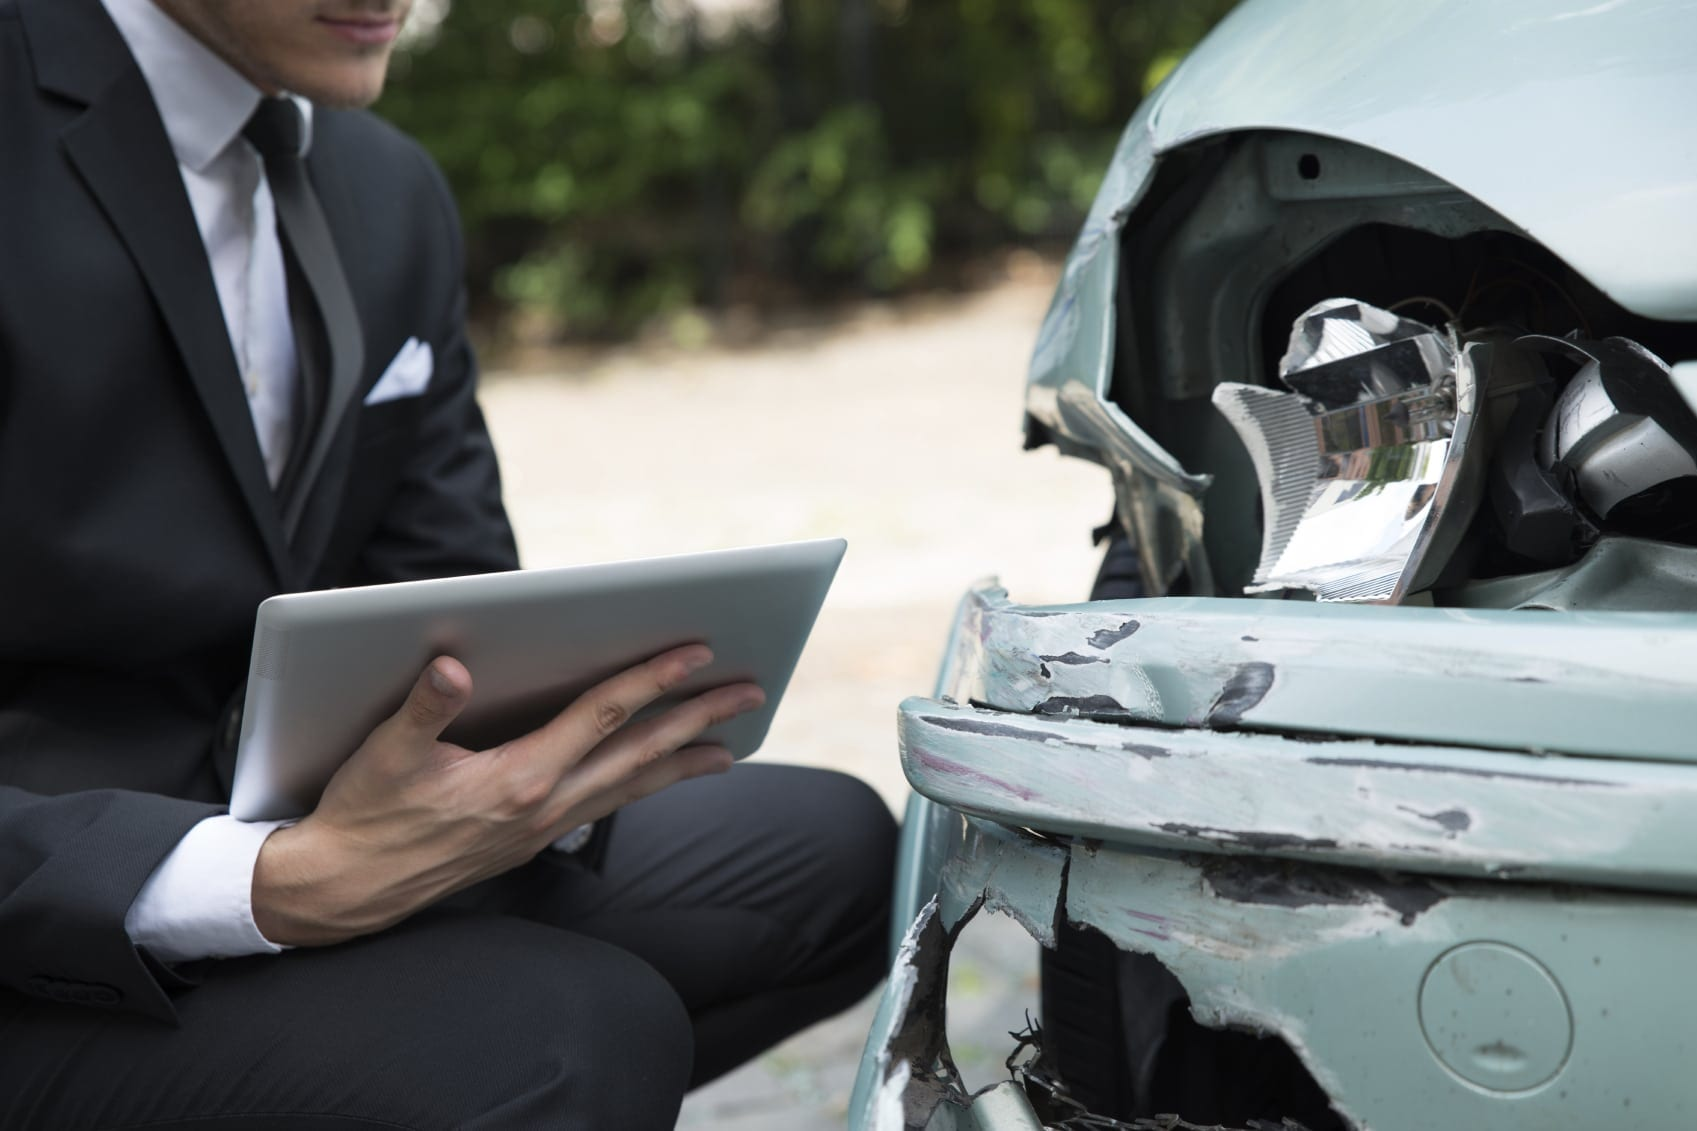 Insurance Adjuster Examining Damaged Car After An Accident